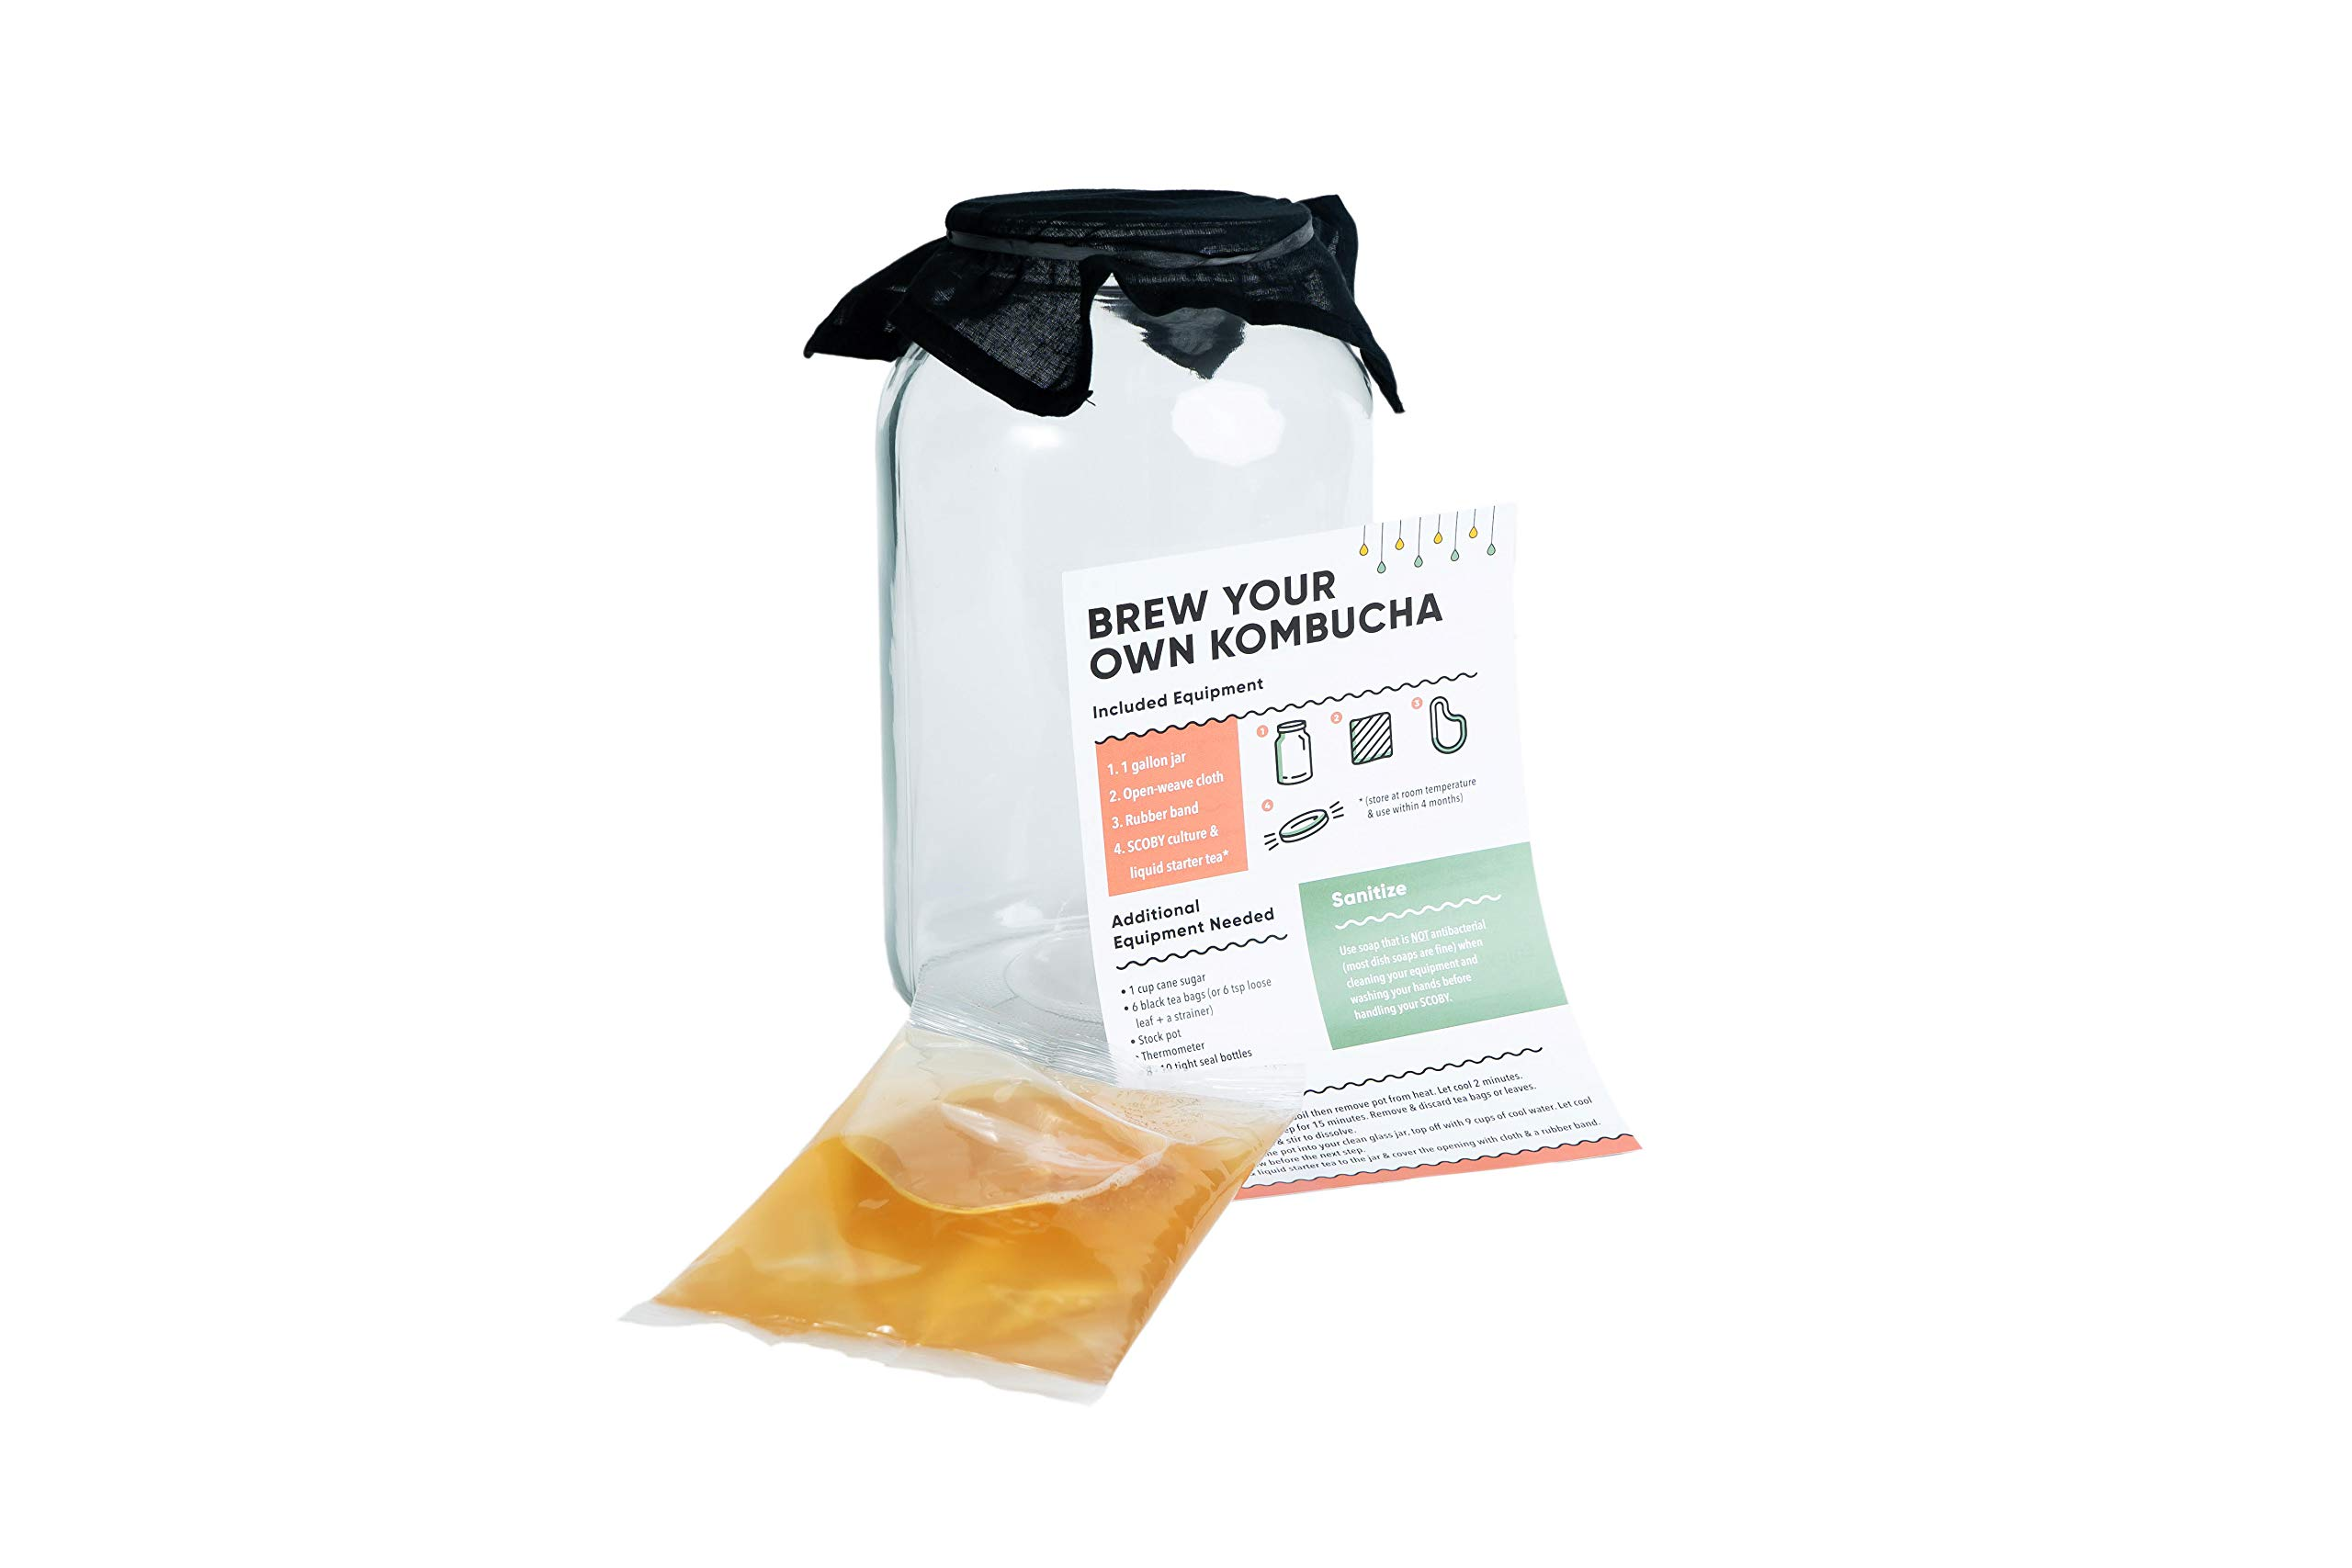 Craft A Brew For Home Includes Fresh Kombucha SCOBY Starter, 1 Gallon Fermenting Jar, Cloth Cover, Brewing Guide, Basic Kit